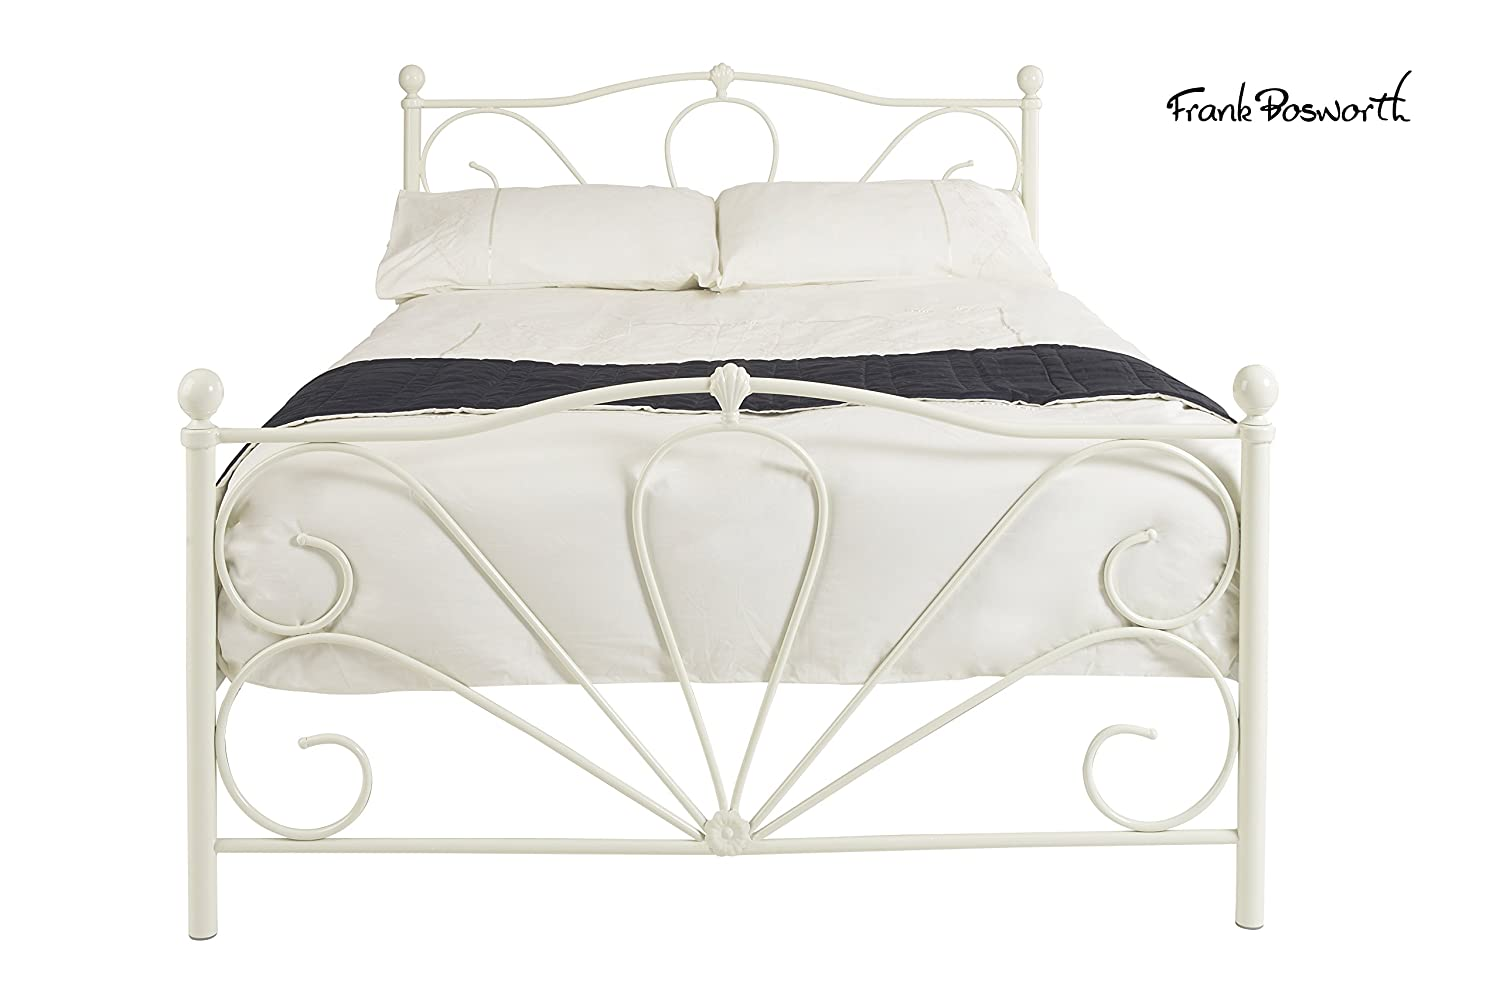 Frank Bosworth CLE-5IVO-M Metal Cleon Bed Frame, King Size, 207 x 153 x 110 cm/5 ft, Ivory